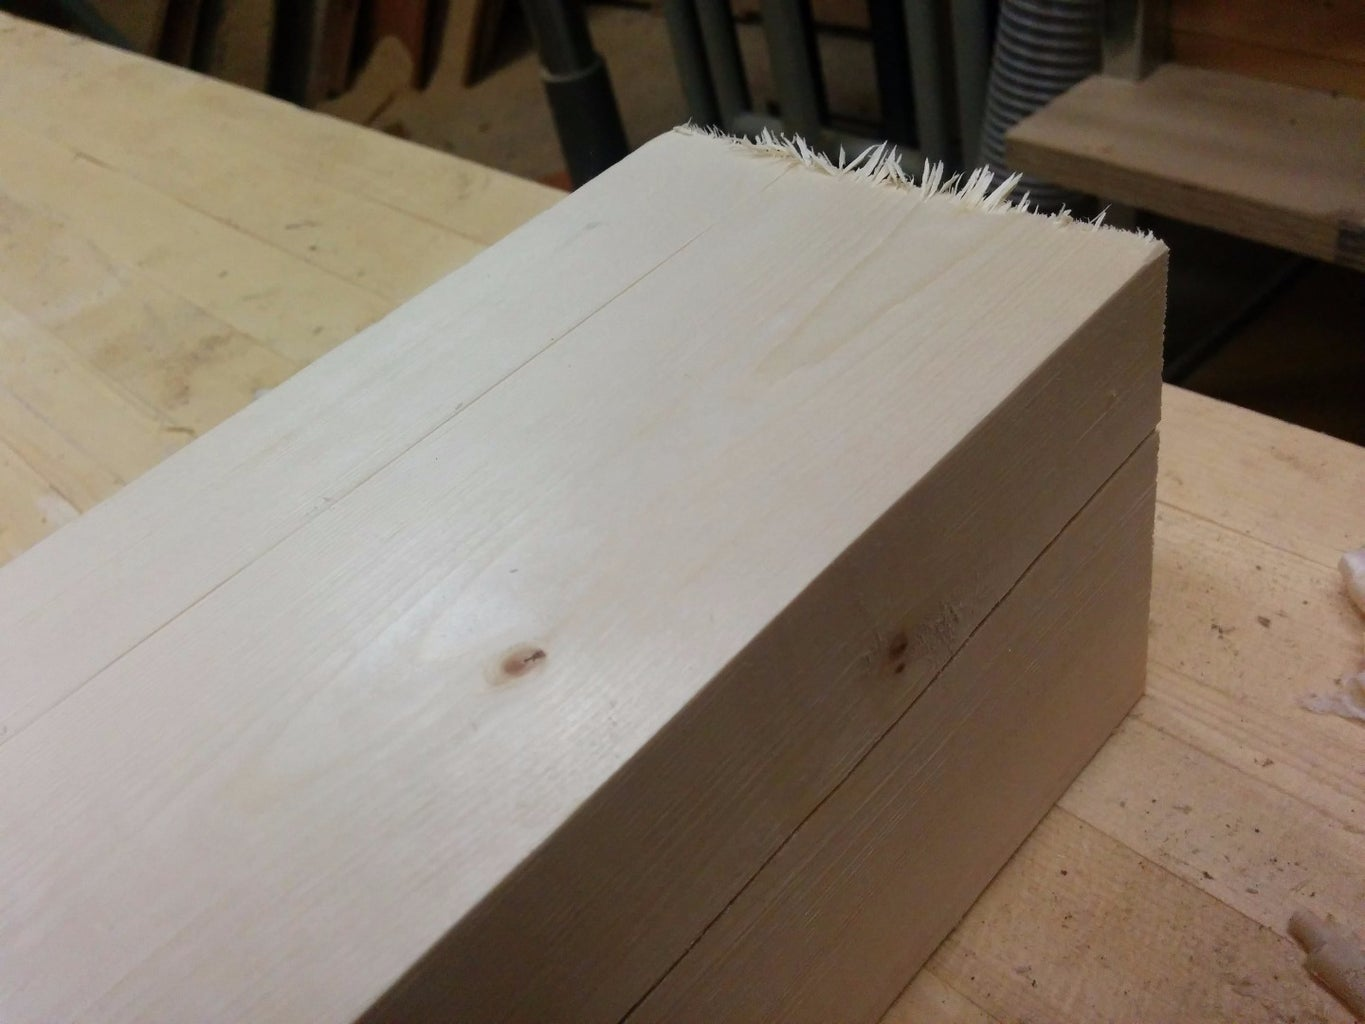 Step 5: Prepare Your Material for a Table Base